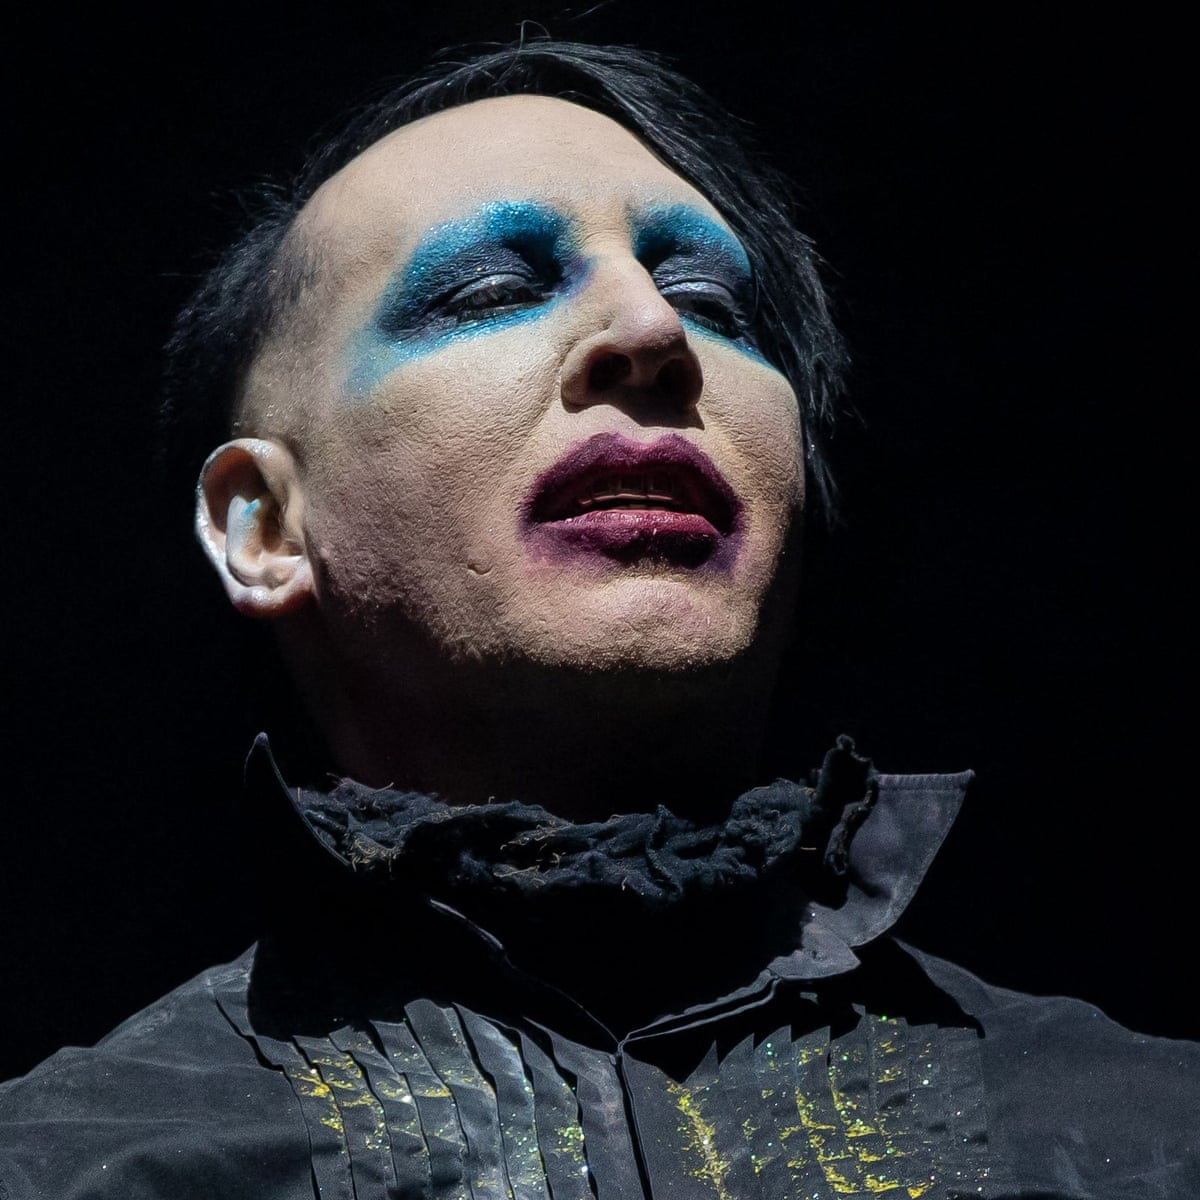 Marilyn Manson sued by ex-assistant over alleged sexual assault   Marilyn Manson   The Guardian